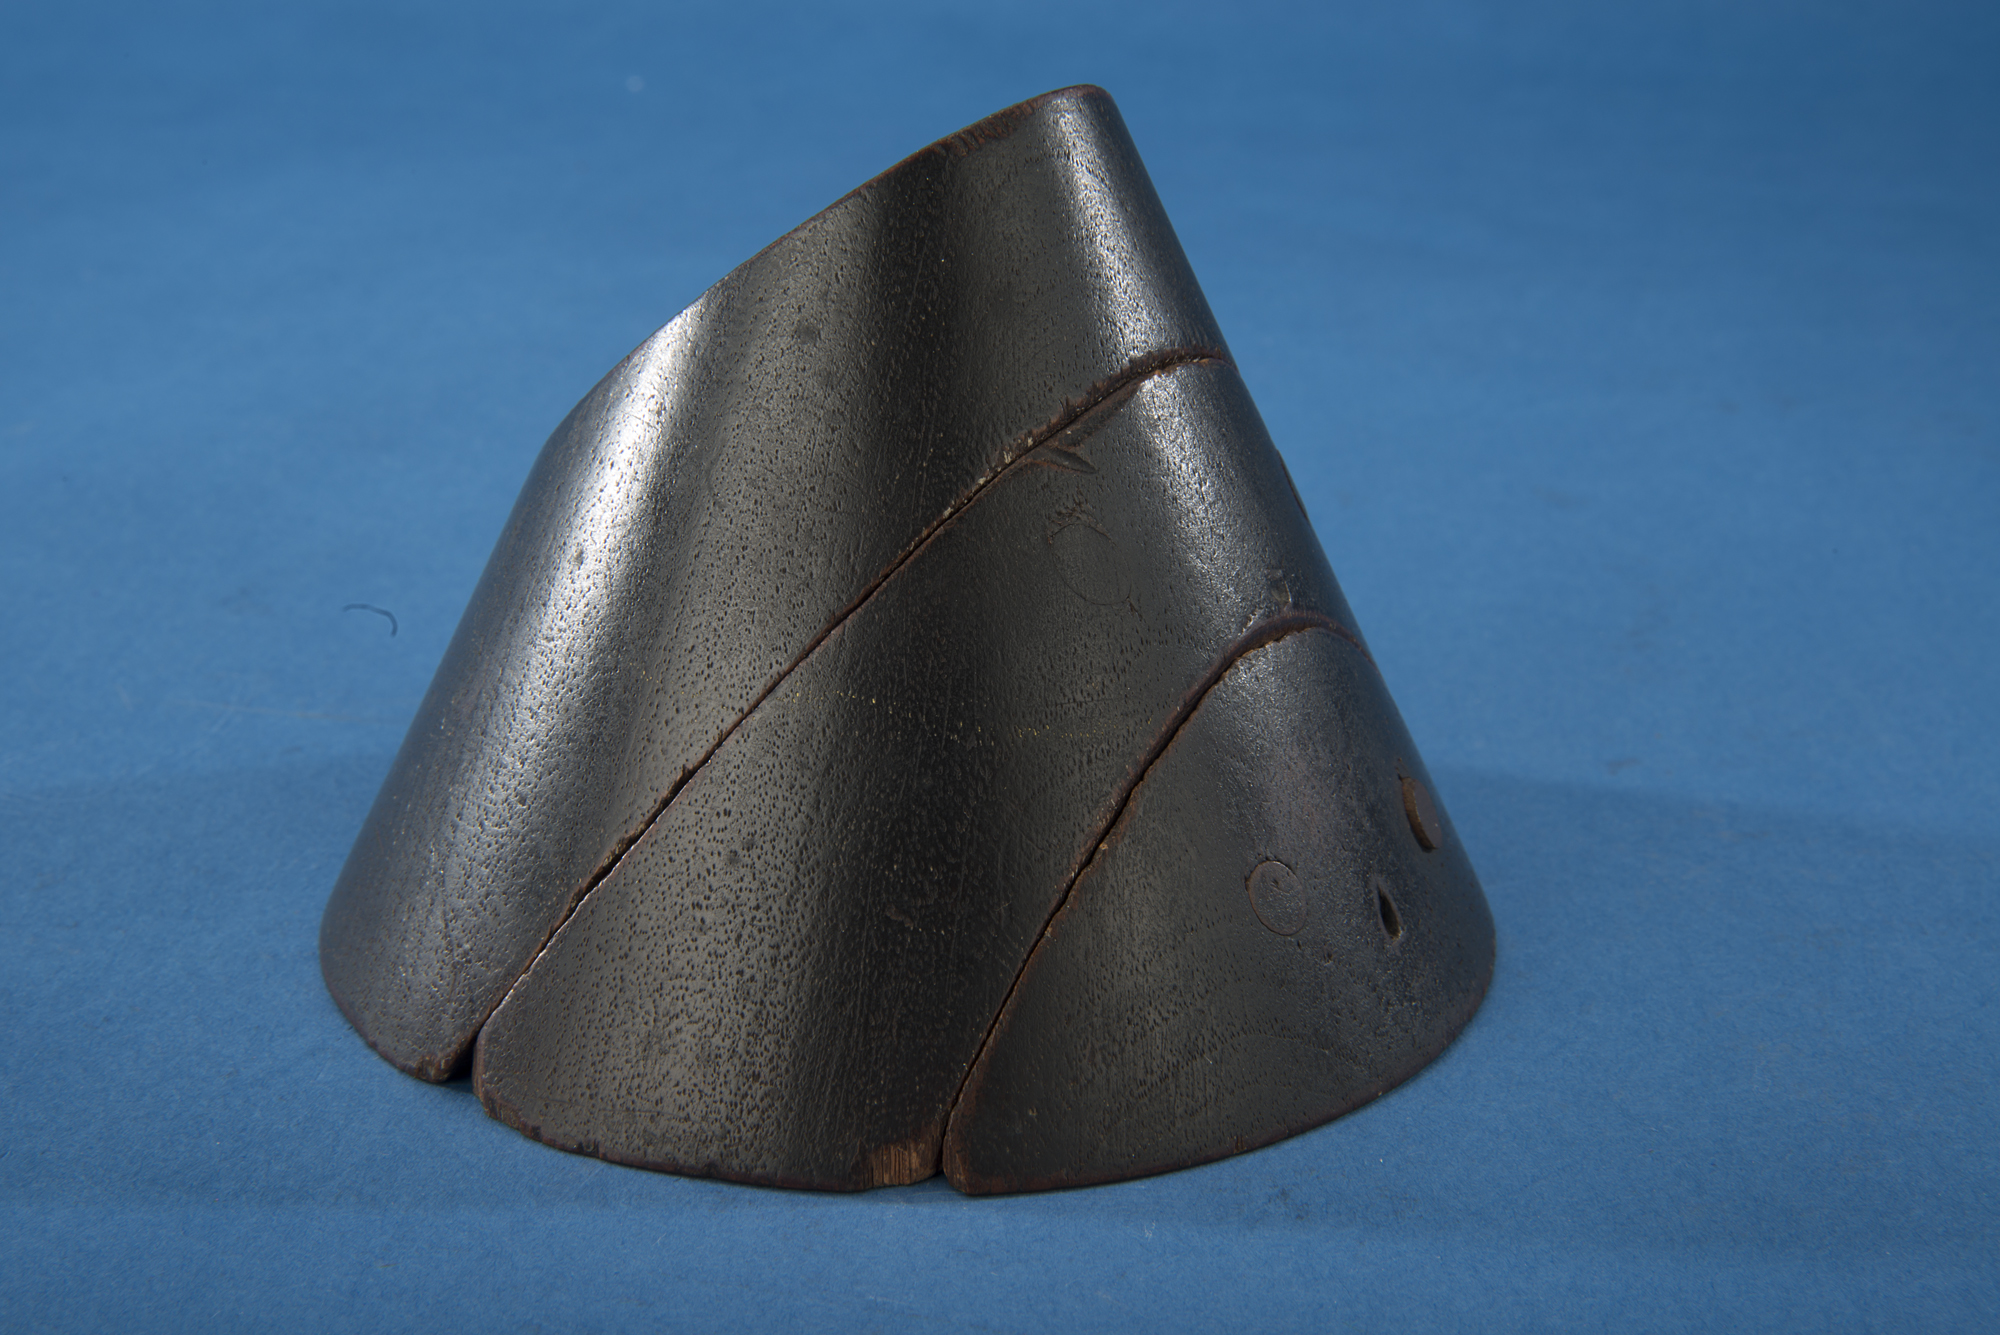 Model of a Cone Cut by Planes to Form Conic Sections, Parabola